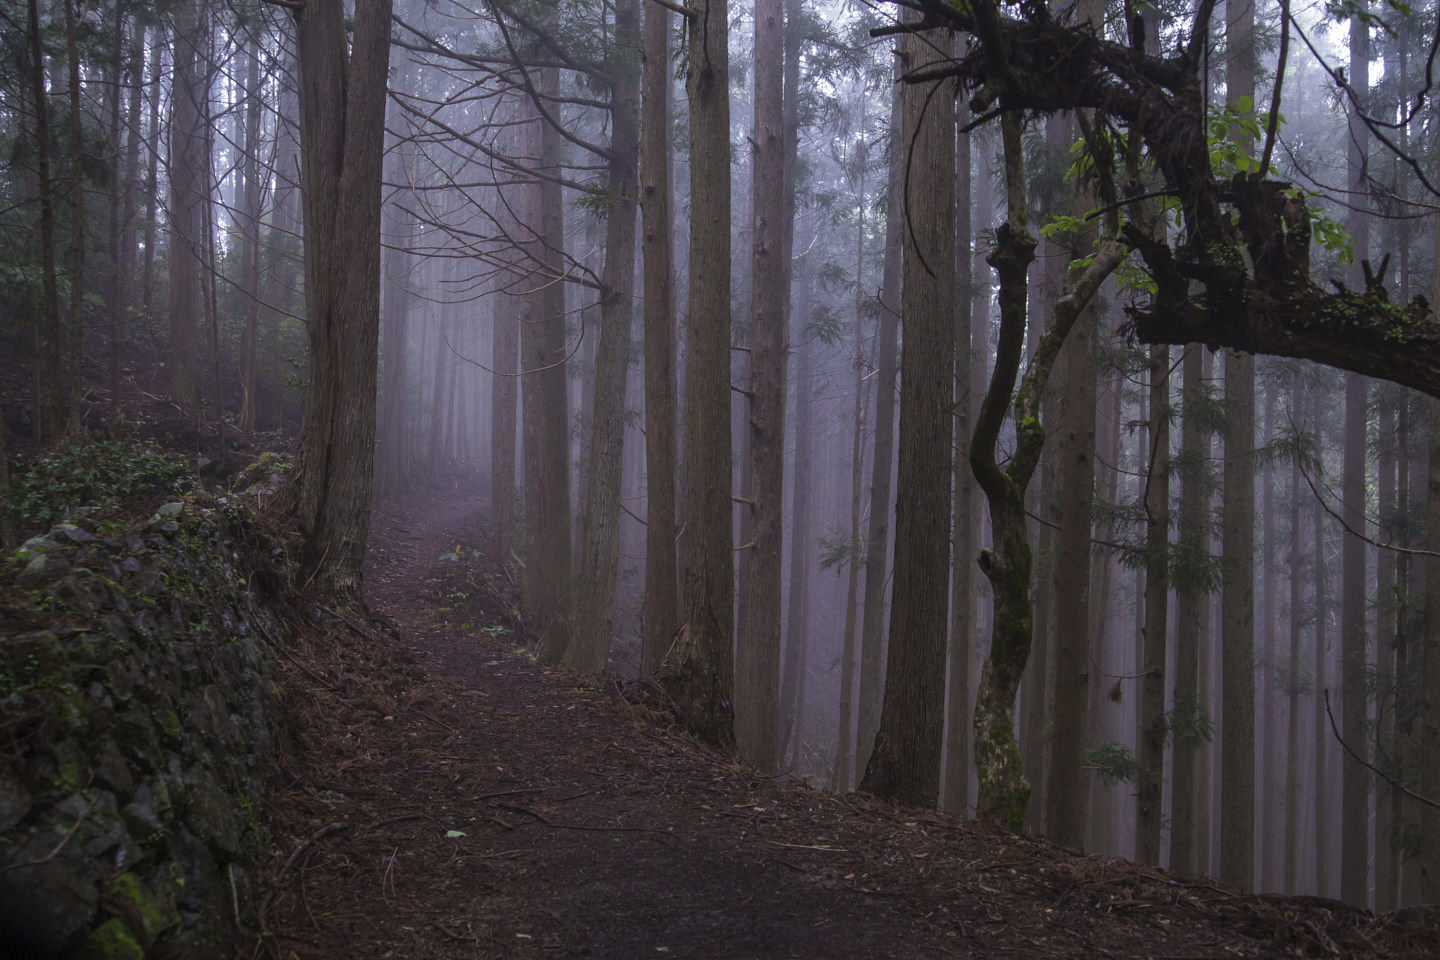 A path weaves deep into woodland between treetrunks and fog